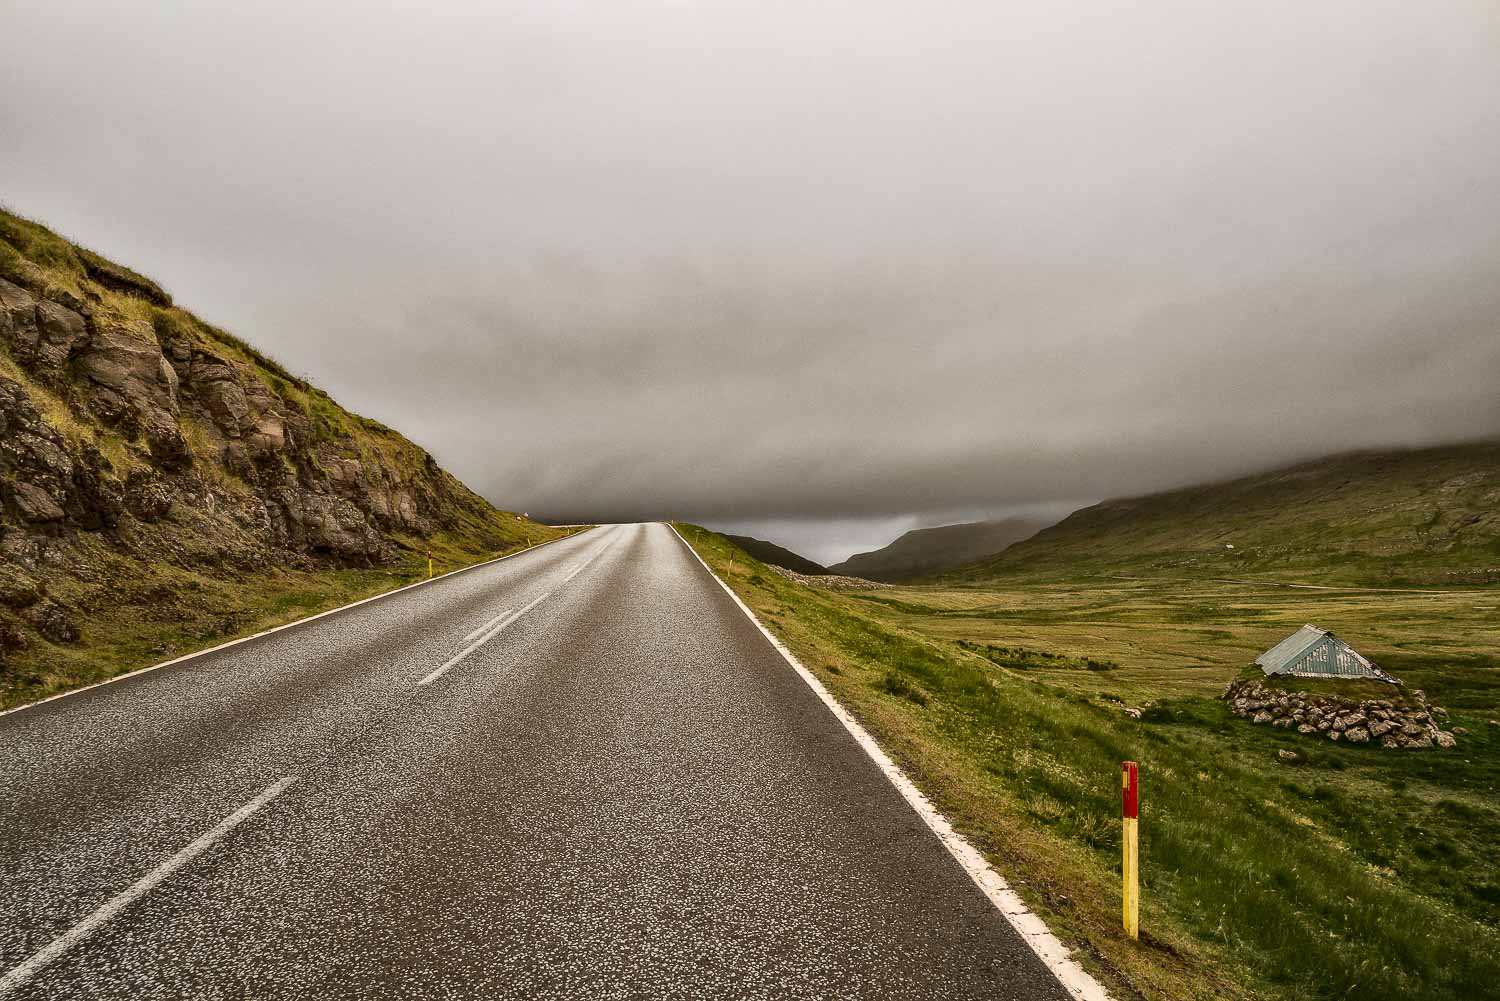 A journey around the    Faroe Islands    involves quite a bit of driving and, in many ways, it doesn't matter which way you go. You'll get to where you need to go, eventually. It's just a matter of surrendering to the journey and letting the adventure unfold with every turn in the road.